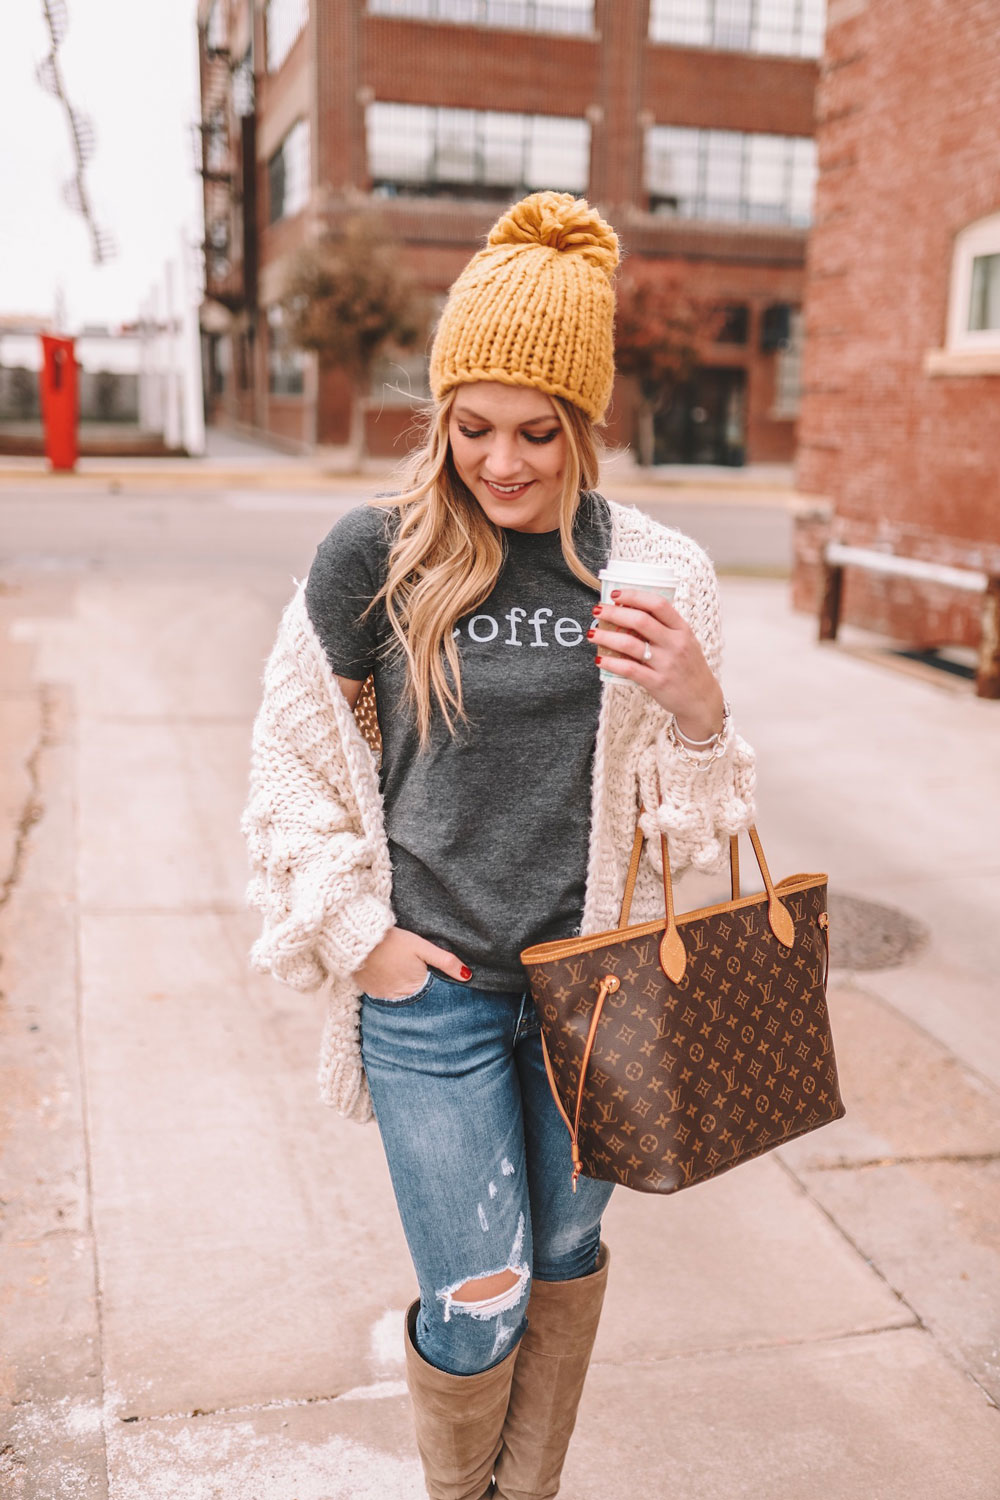 Amanda's OK wearing cozy knits and a coffee graphic tee in Midtown Oklahoma City